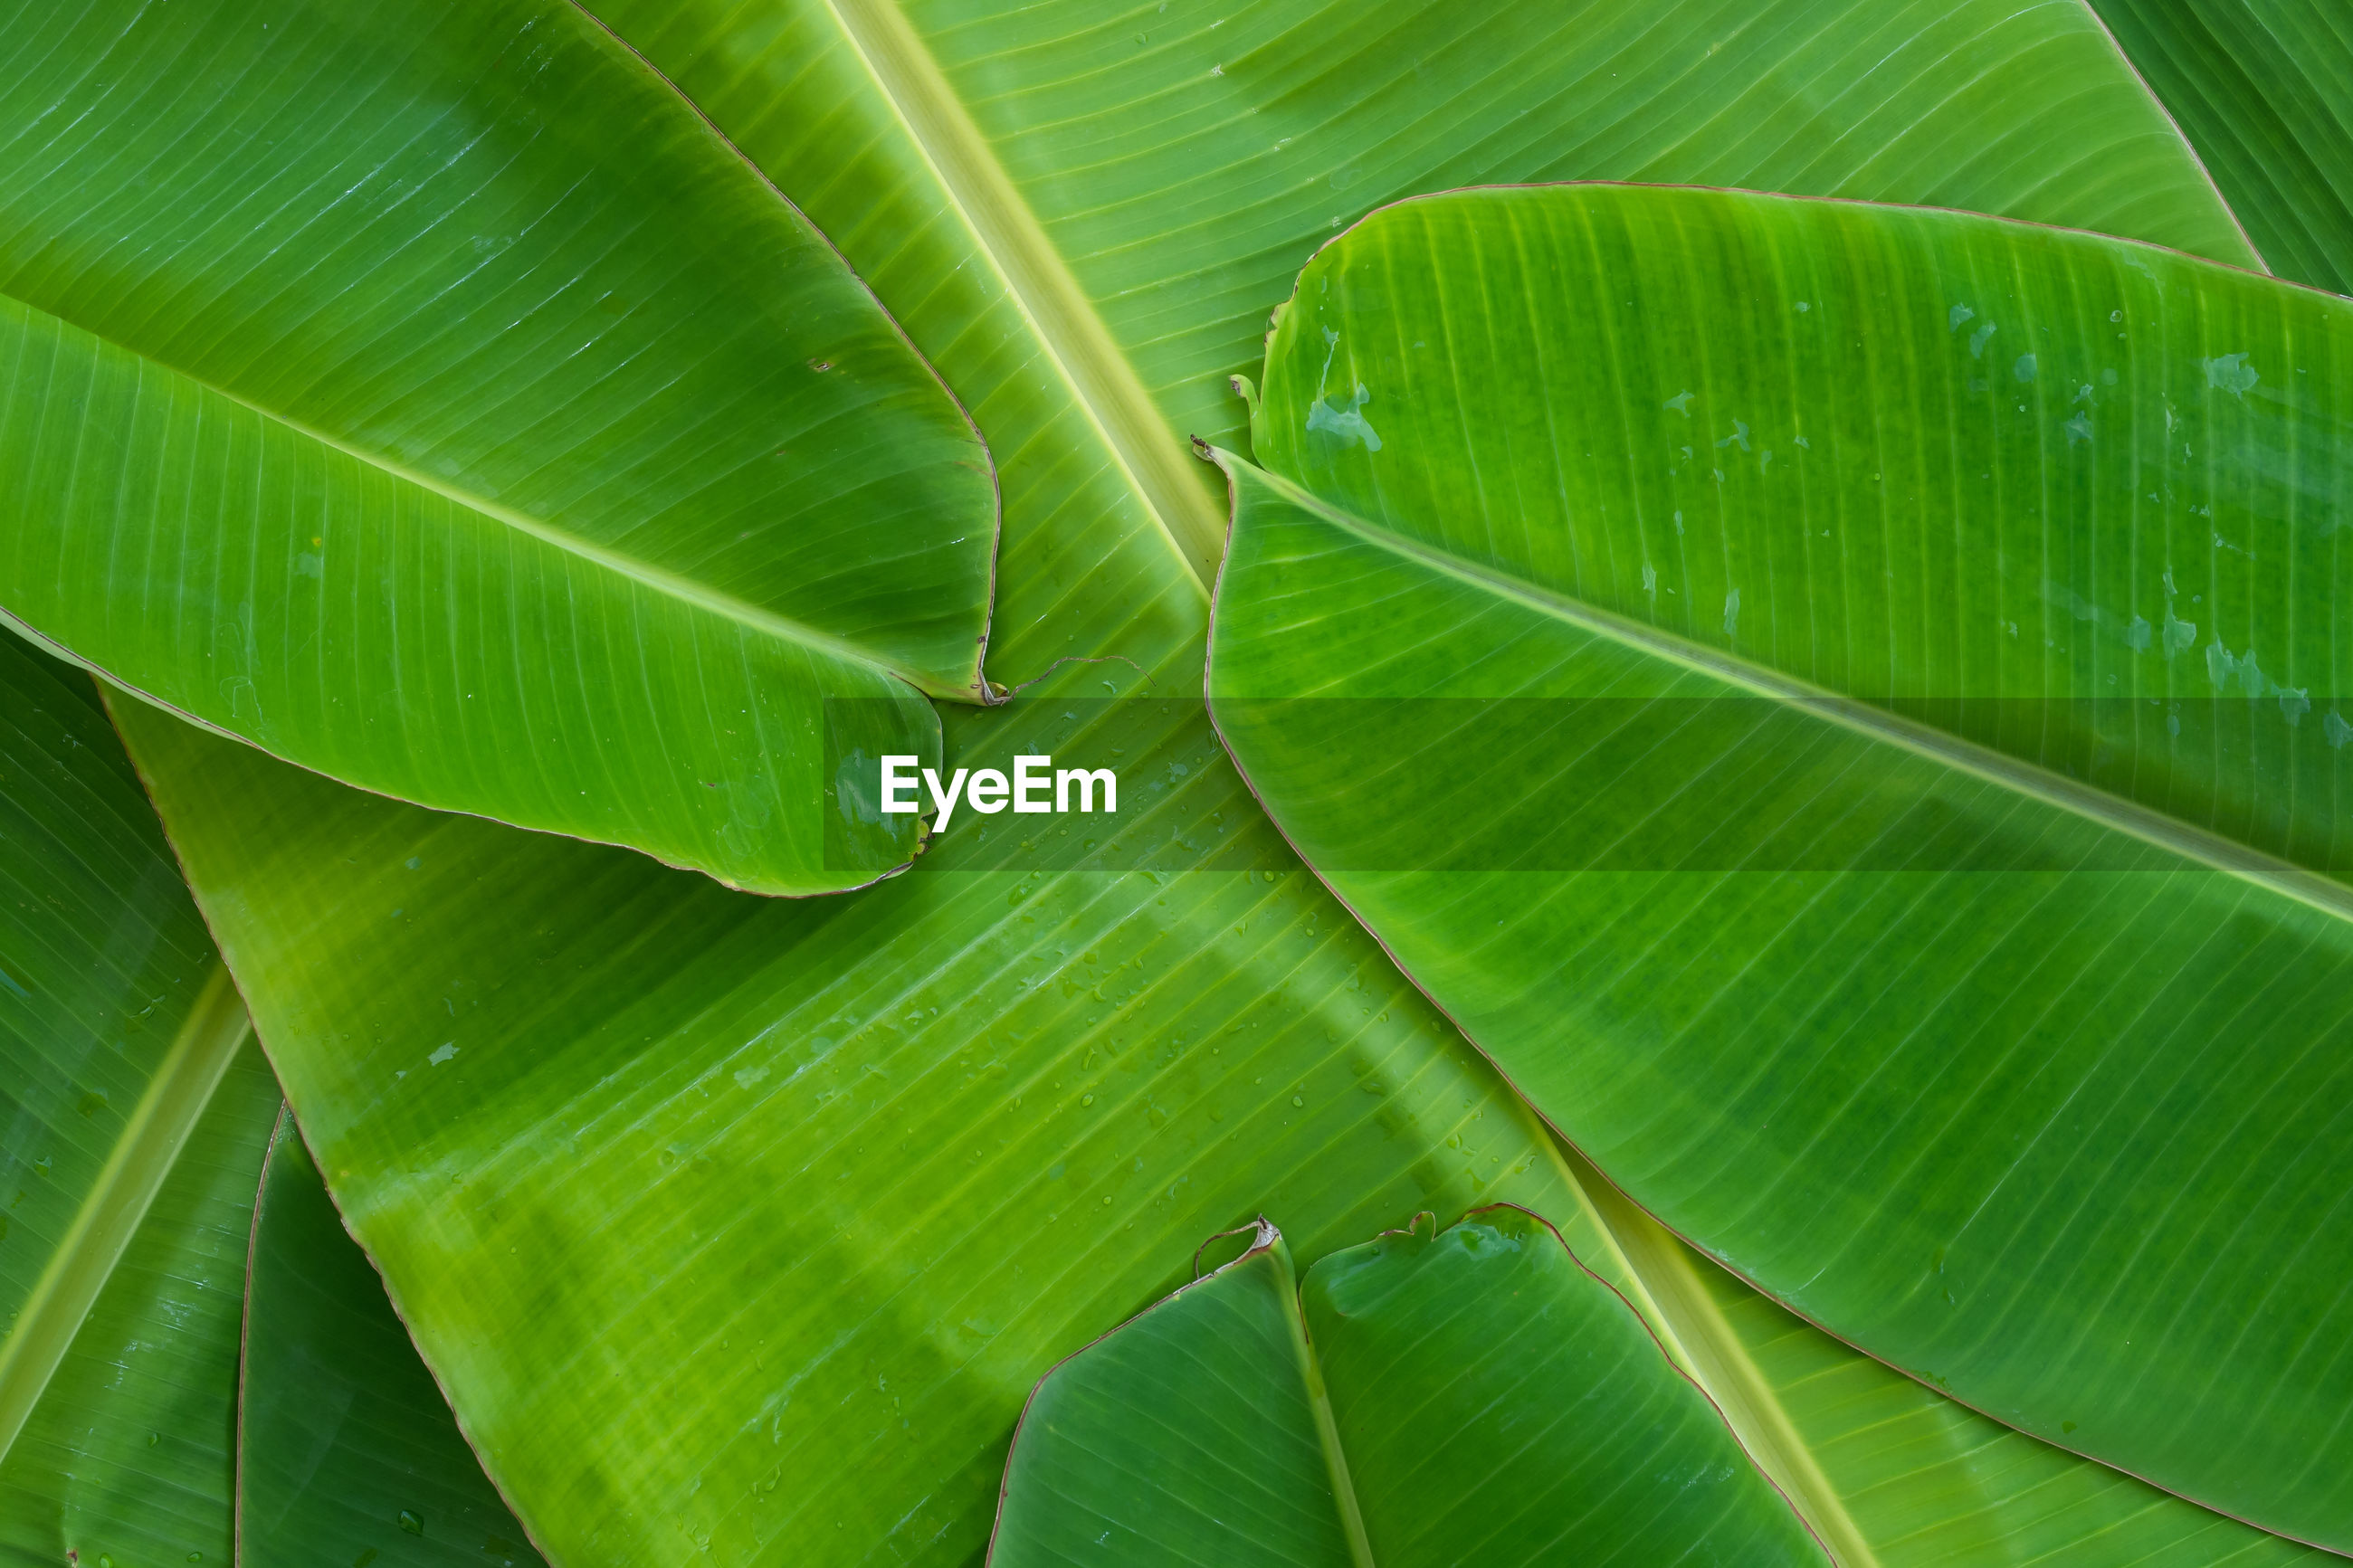 FULL FRAME SHOT OF GREEN LEAF WITH PALM LEAVES